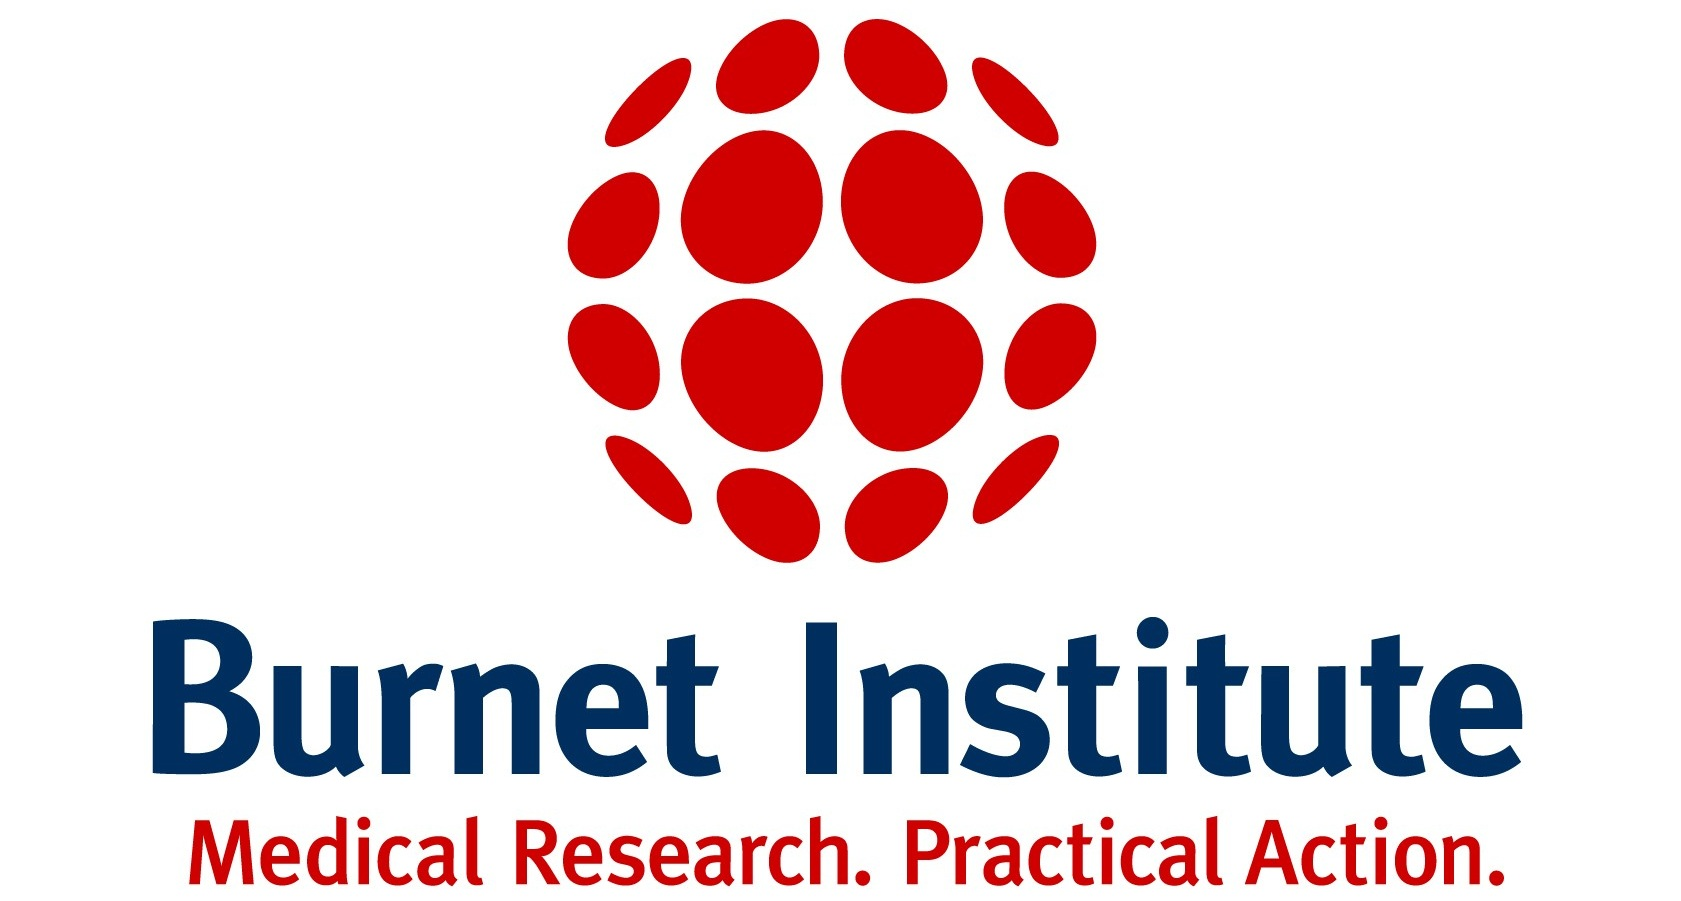 Burnet Institute accelerates the translation of research, discovery and evidence into sustainable health solutions.   https://www.burnet.edu.au/